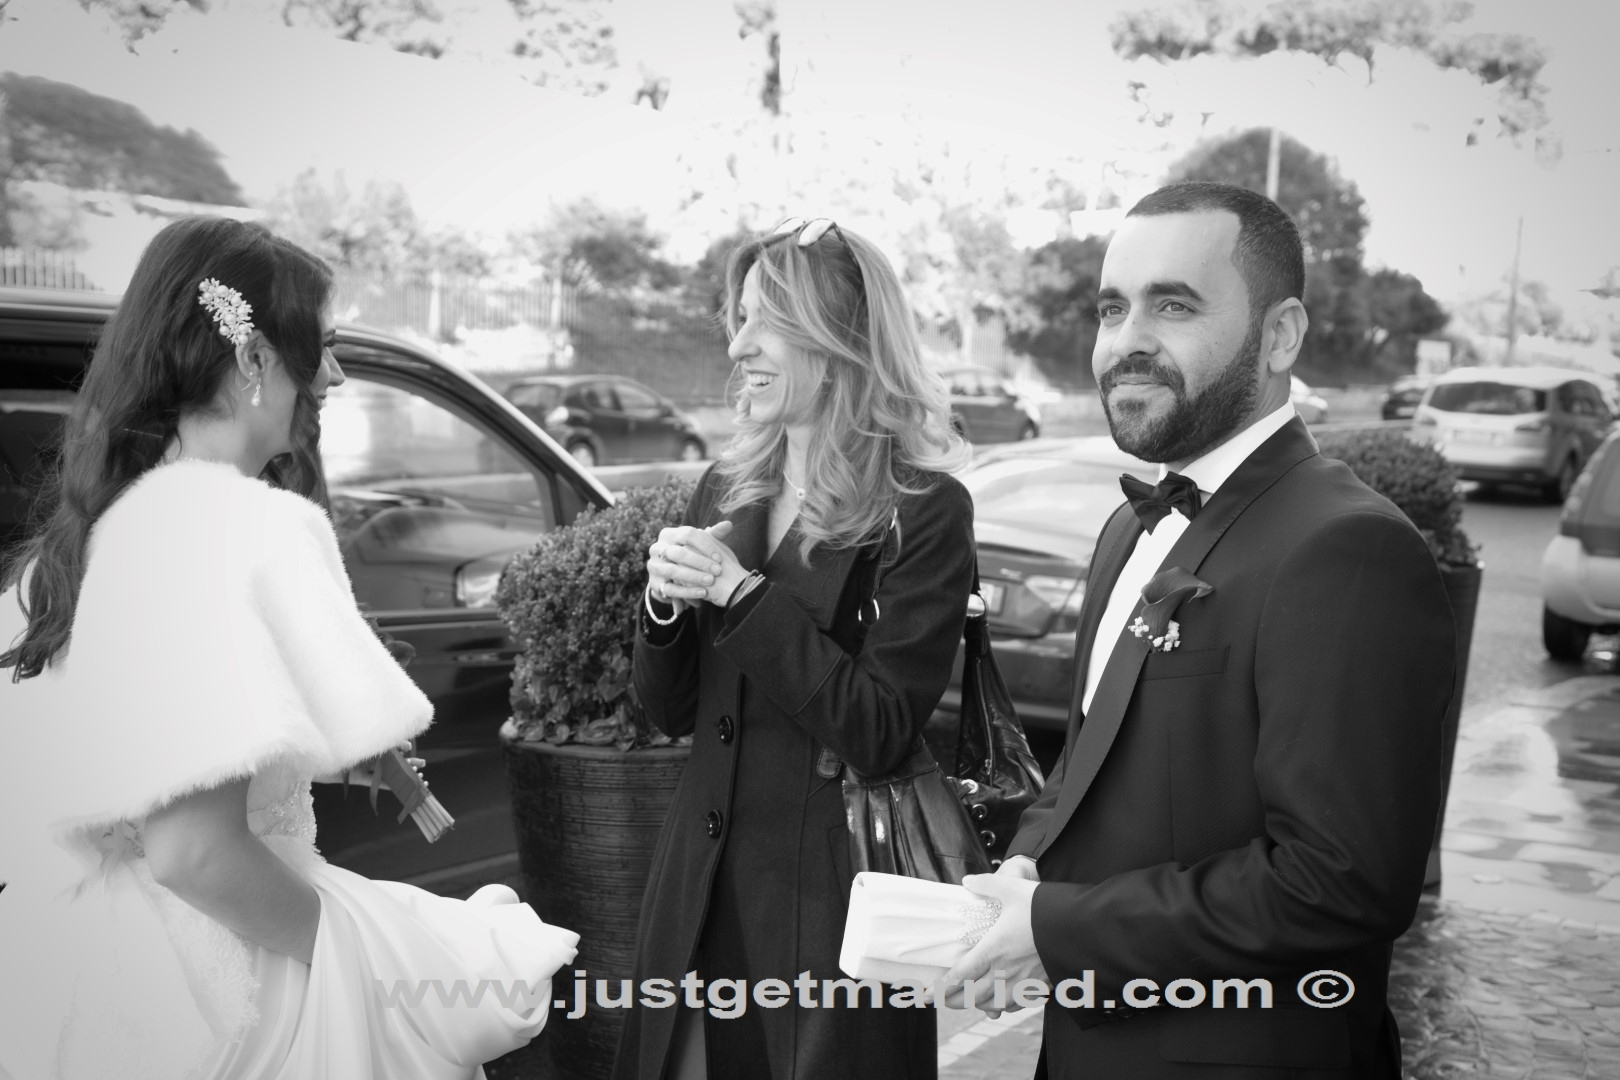 wedding celebrant, officiant marriages, rome outdoor venue